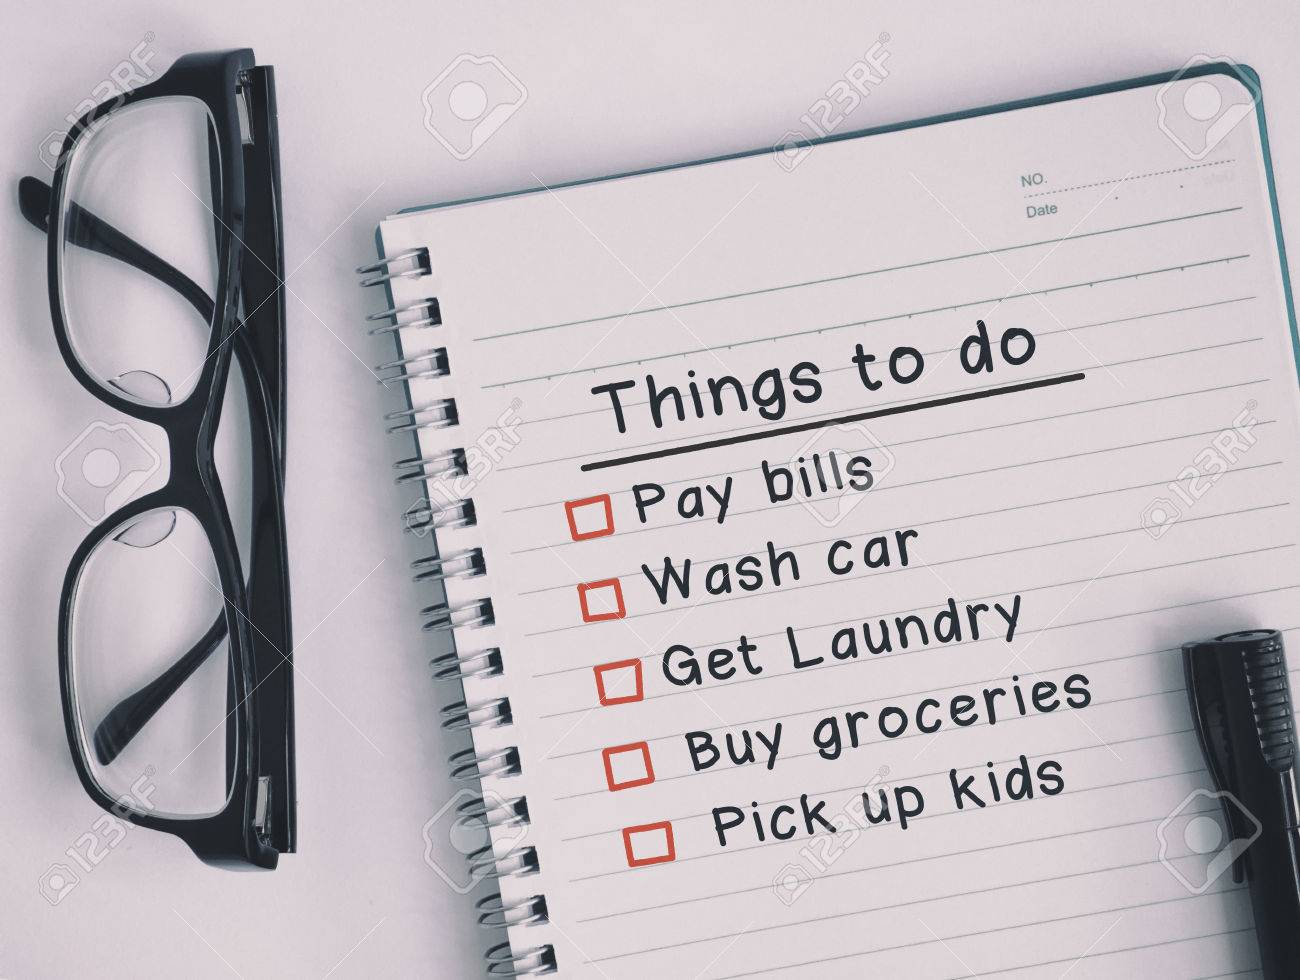 things to do checklist on notepad retro style and analog treatment